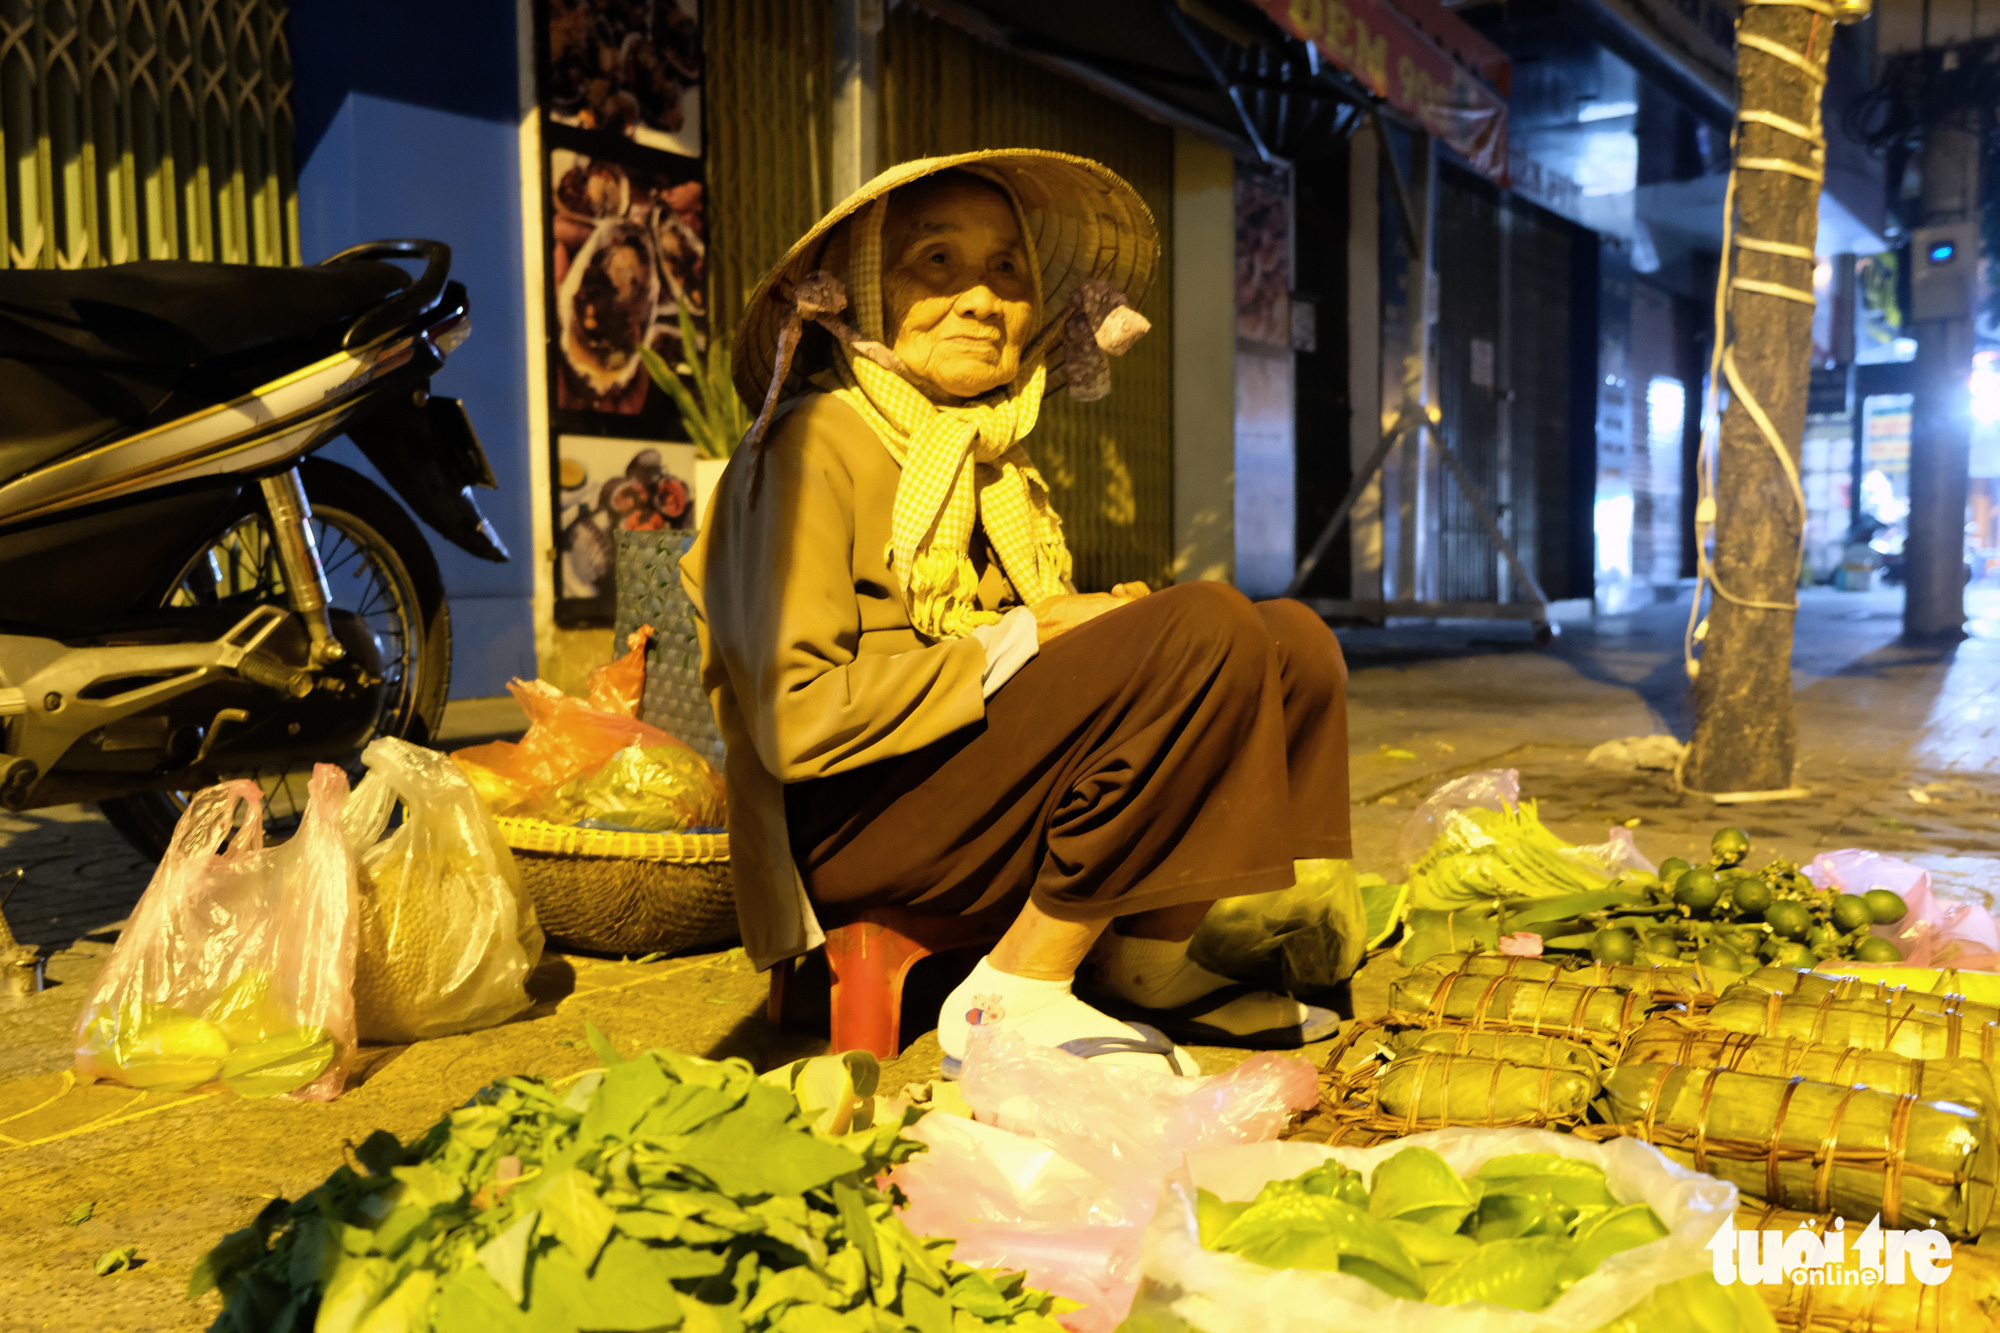 Life goes on: Saigon's have-nots earn living amidst chilliest time of year